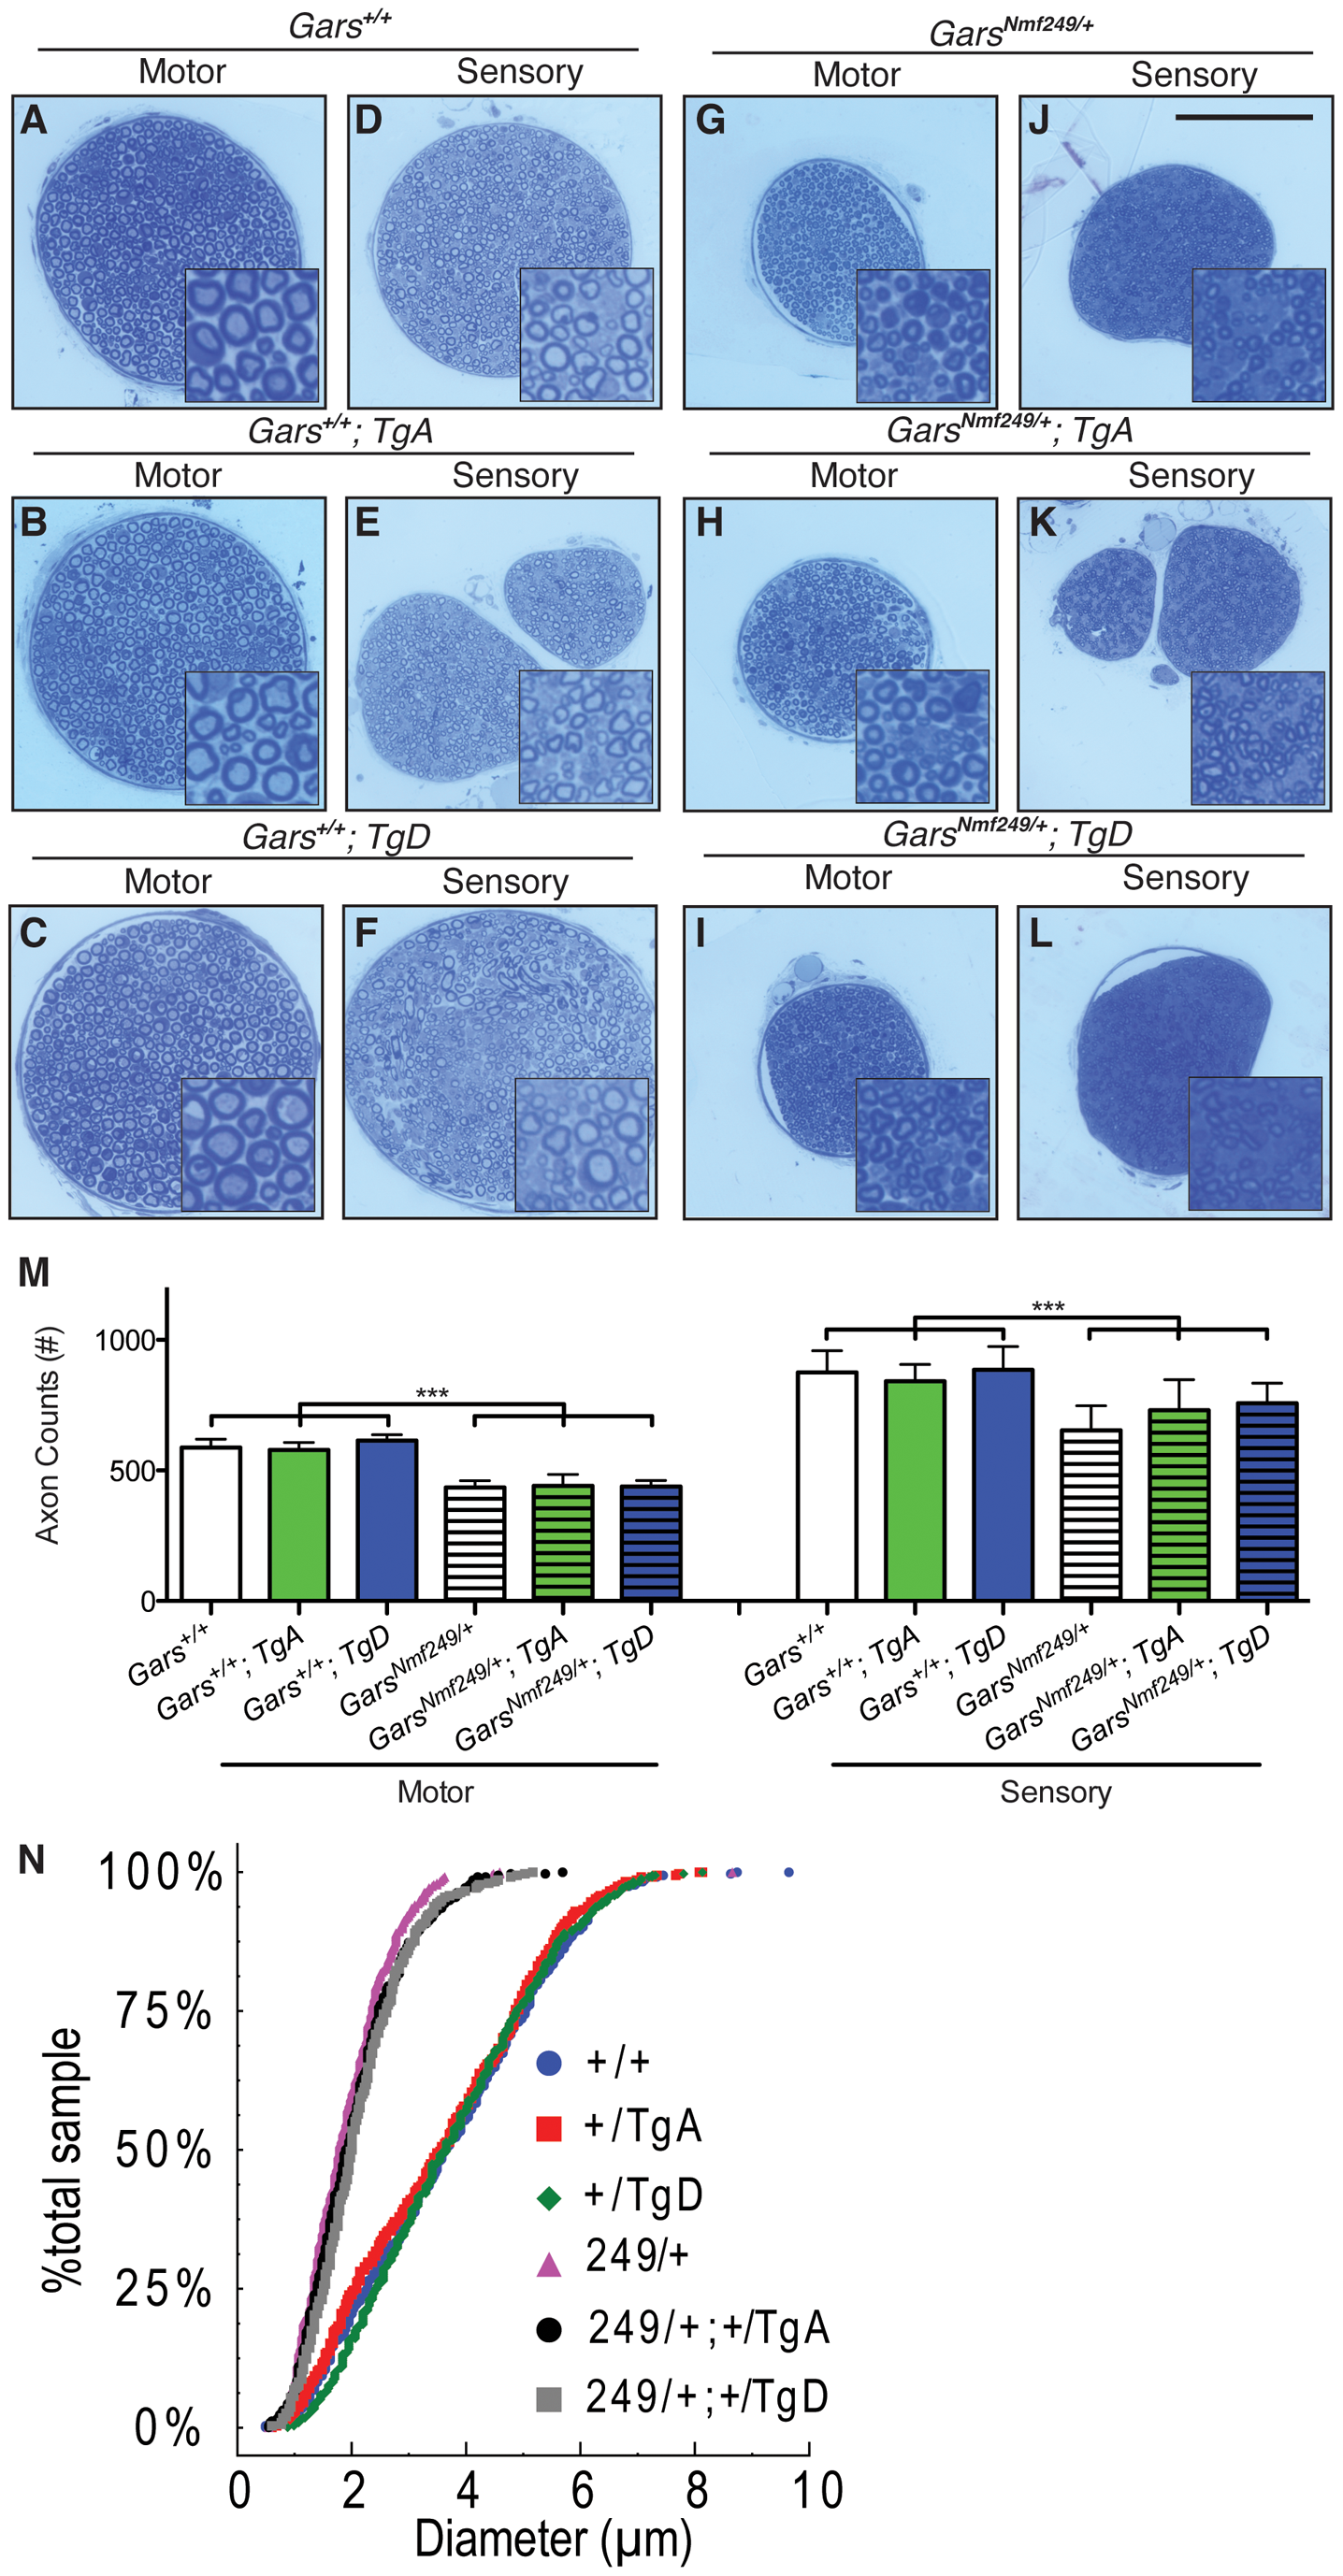 Neither motor nor sensory axon loss in <i>Nmf249/+</i> mice is abated by transgenes A or D.